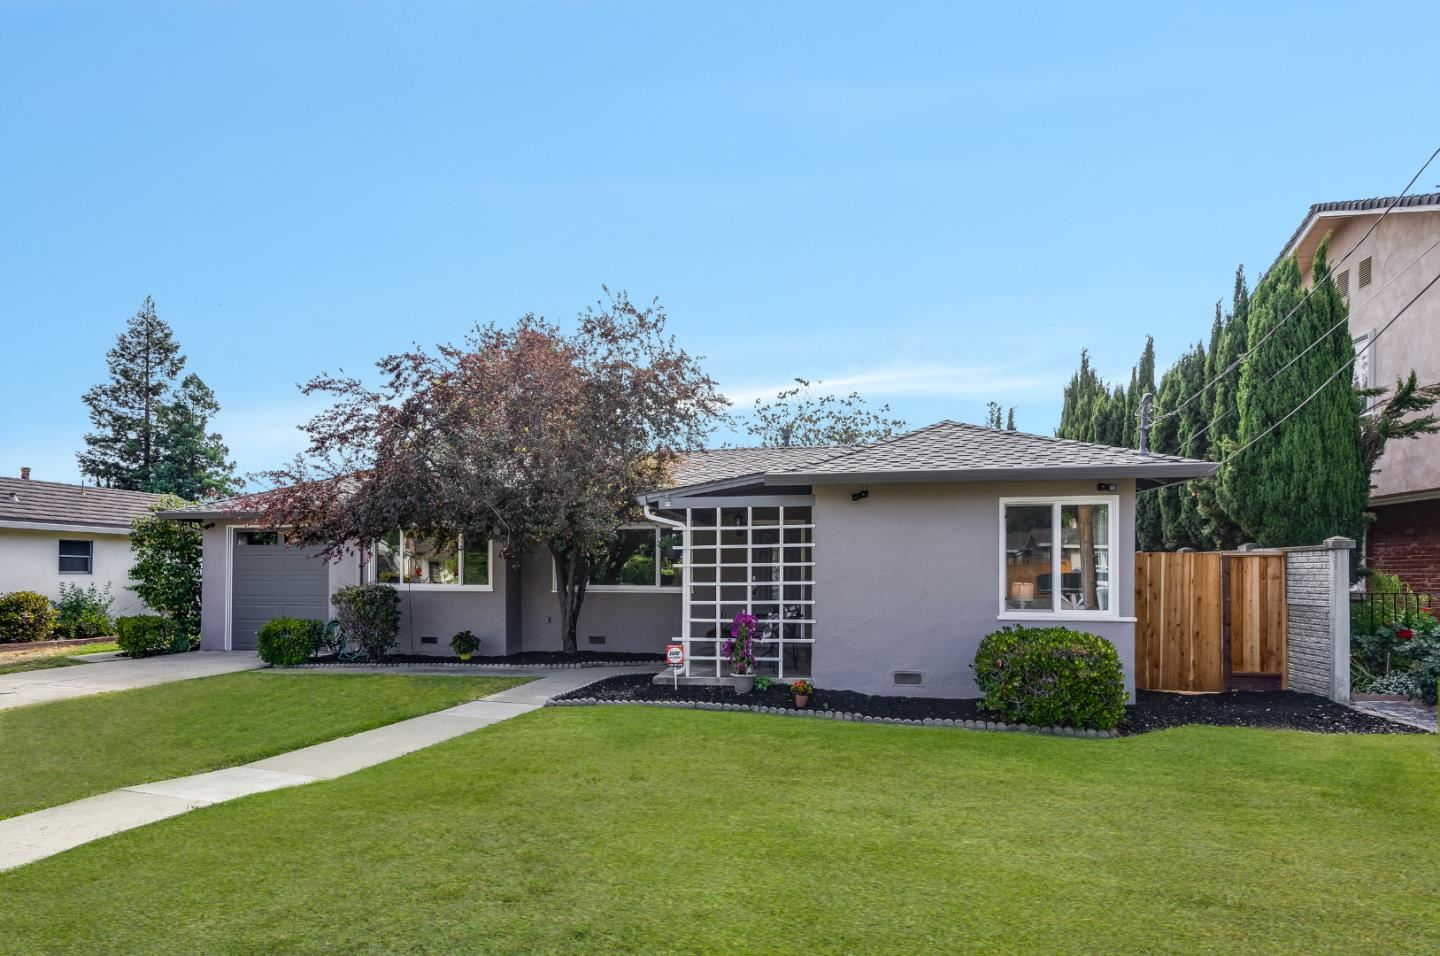 Photo for 1144 Normandy Drive, CAMPBELL, CA 95008 (MLS # ML81845899)